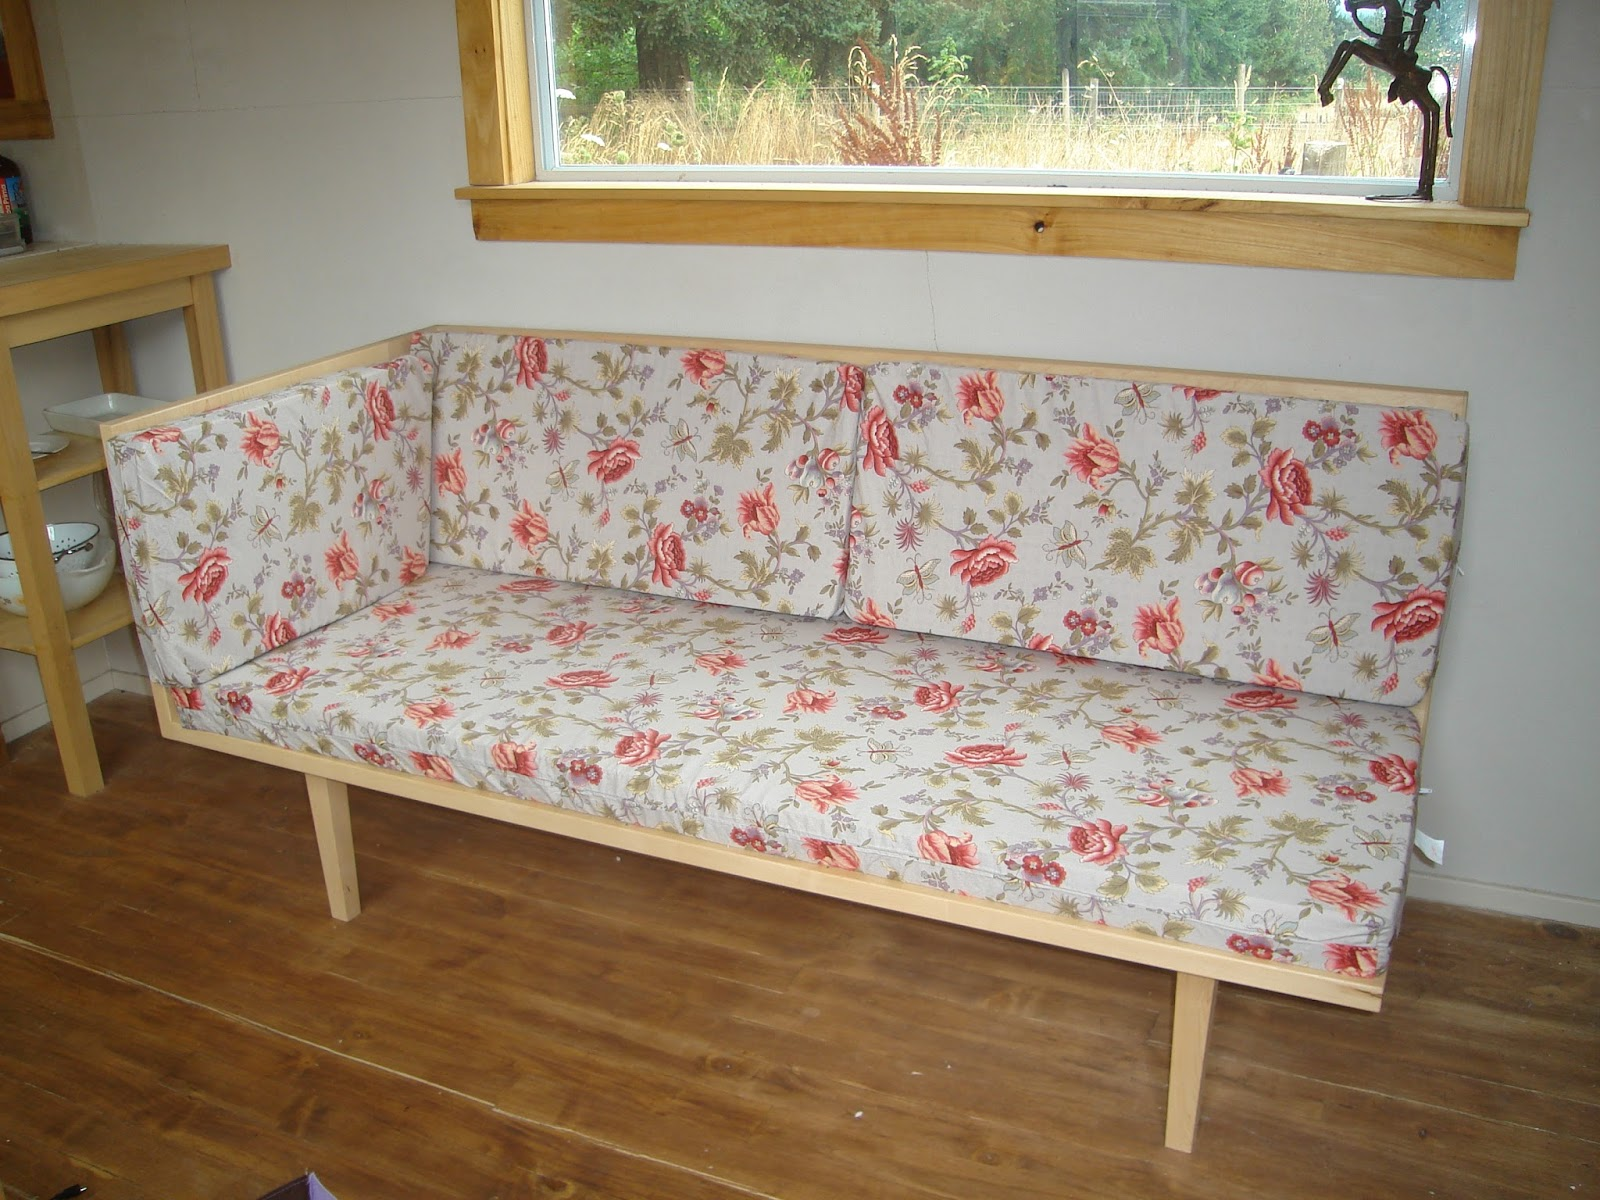 Building A Non Toxic Sofa. Here Is My Chemical Free ...